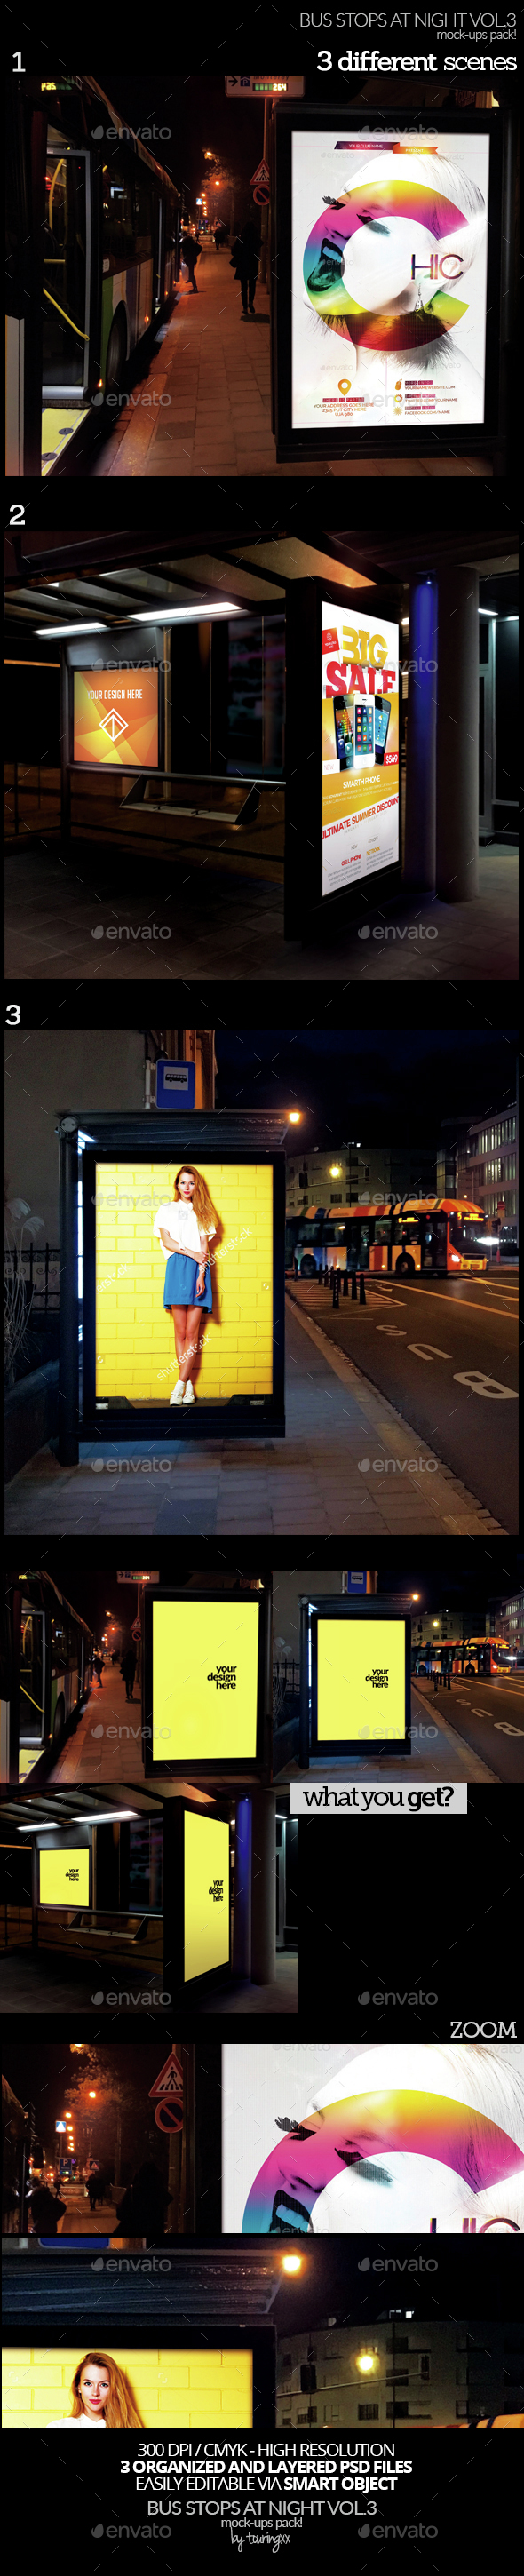 Bus Stops At Night Vol.3 Mock-Ups Pack - Product Mock-Ups Graphics